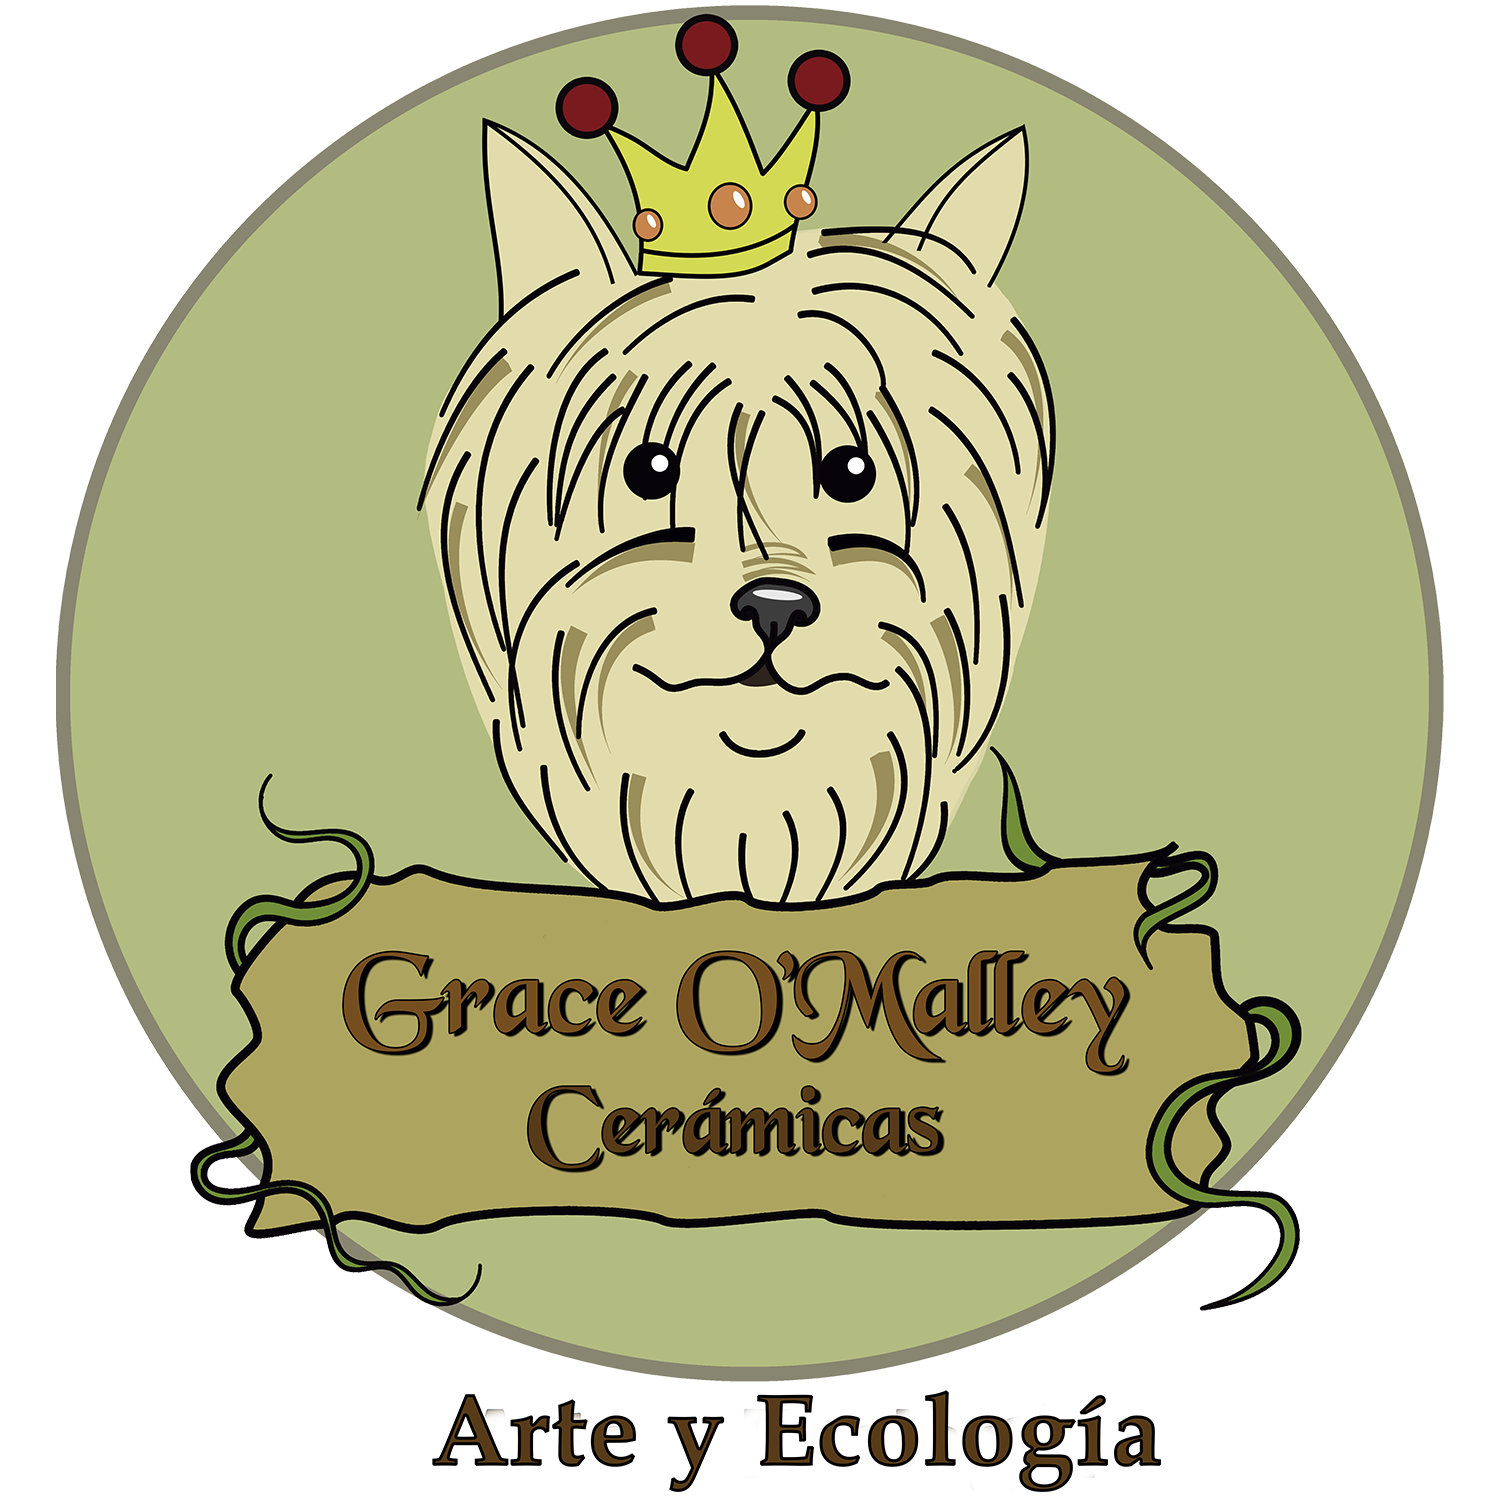 Grace O'Malley Cerámicas